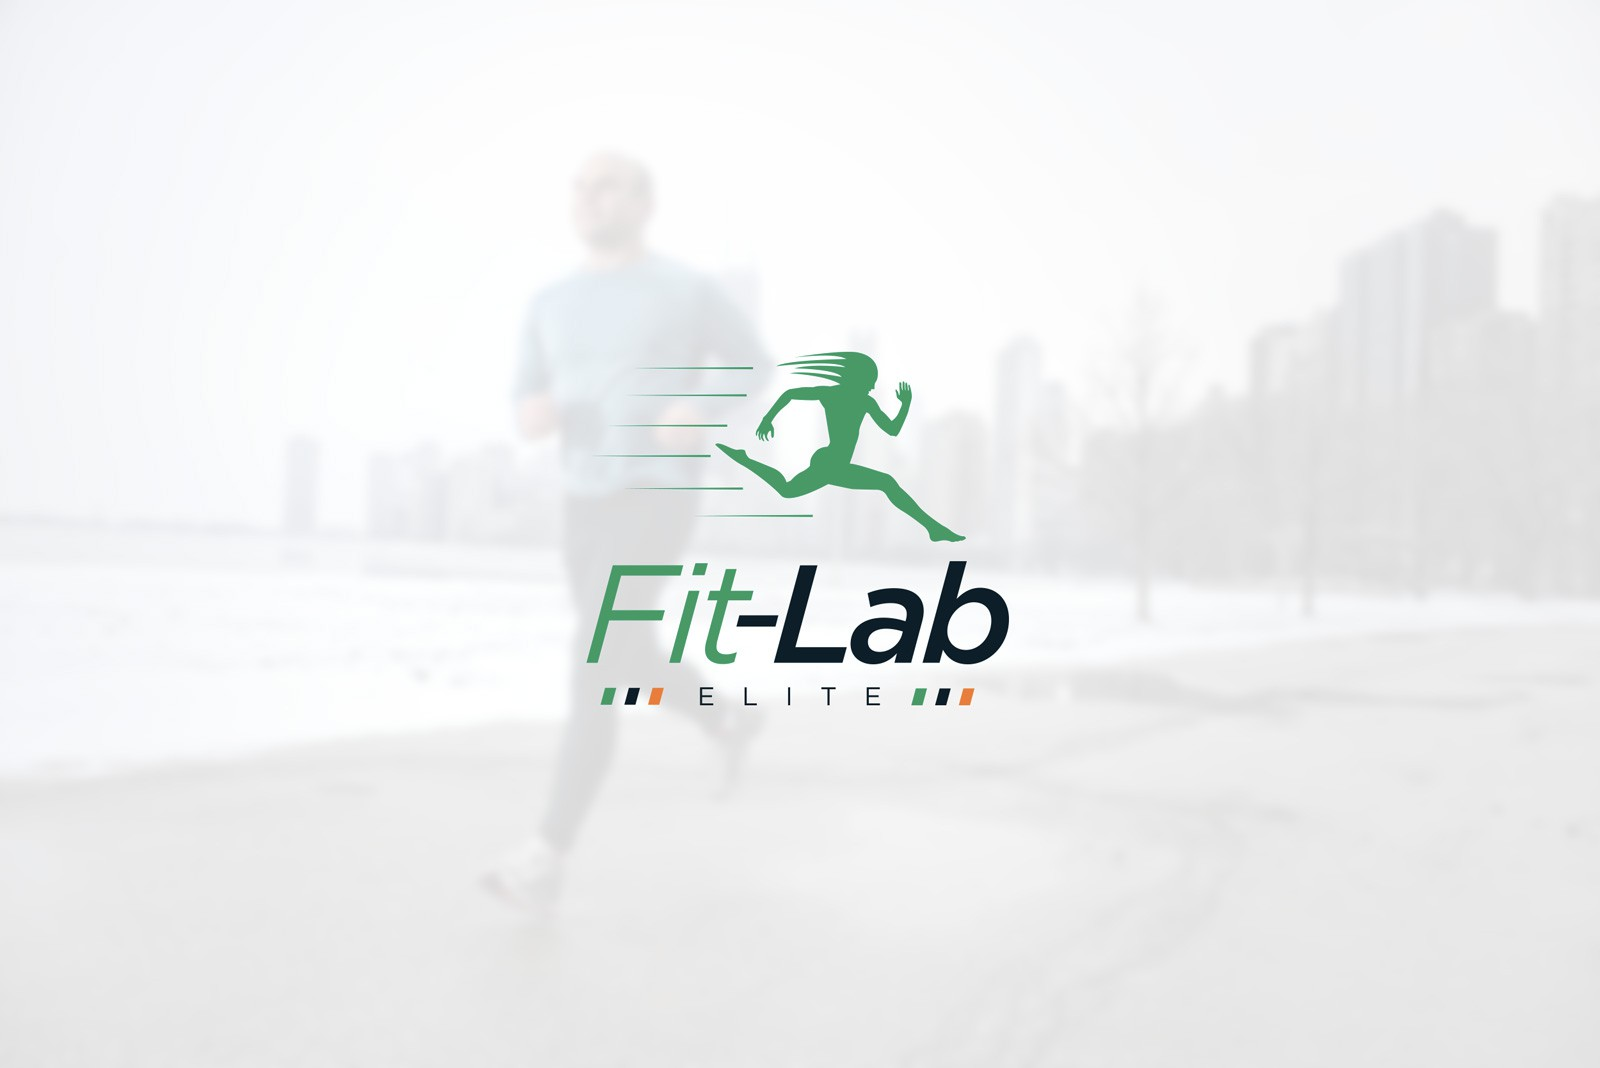 Create an inspiring and uplifting logo and web-site for an innovative fitness company